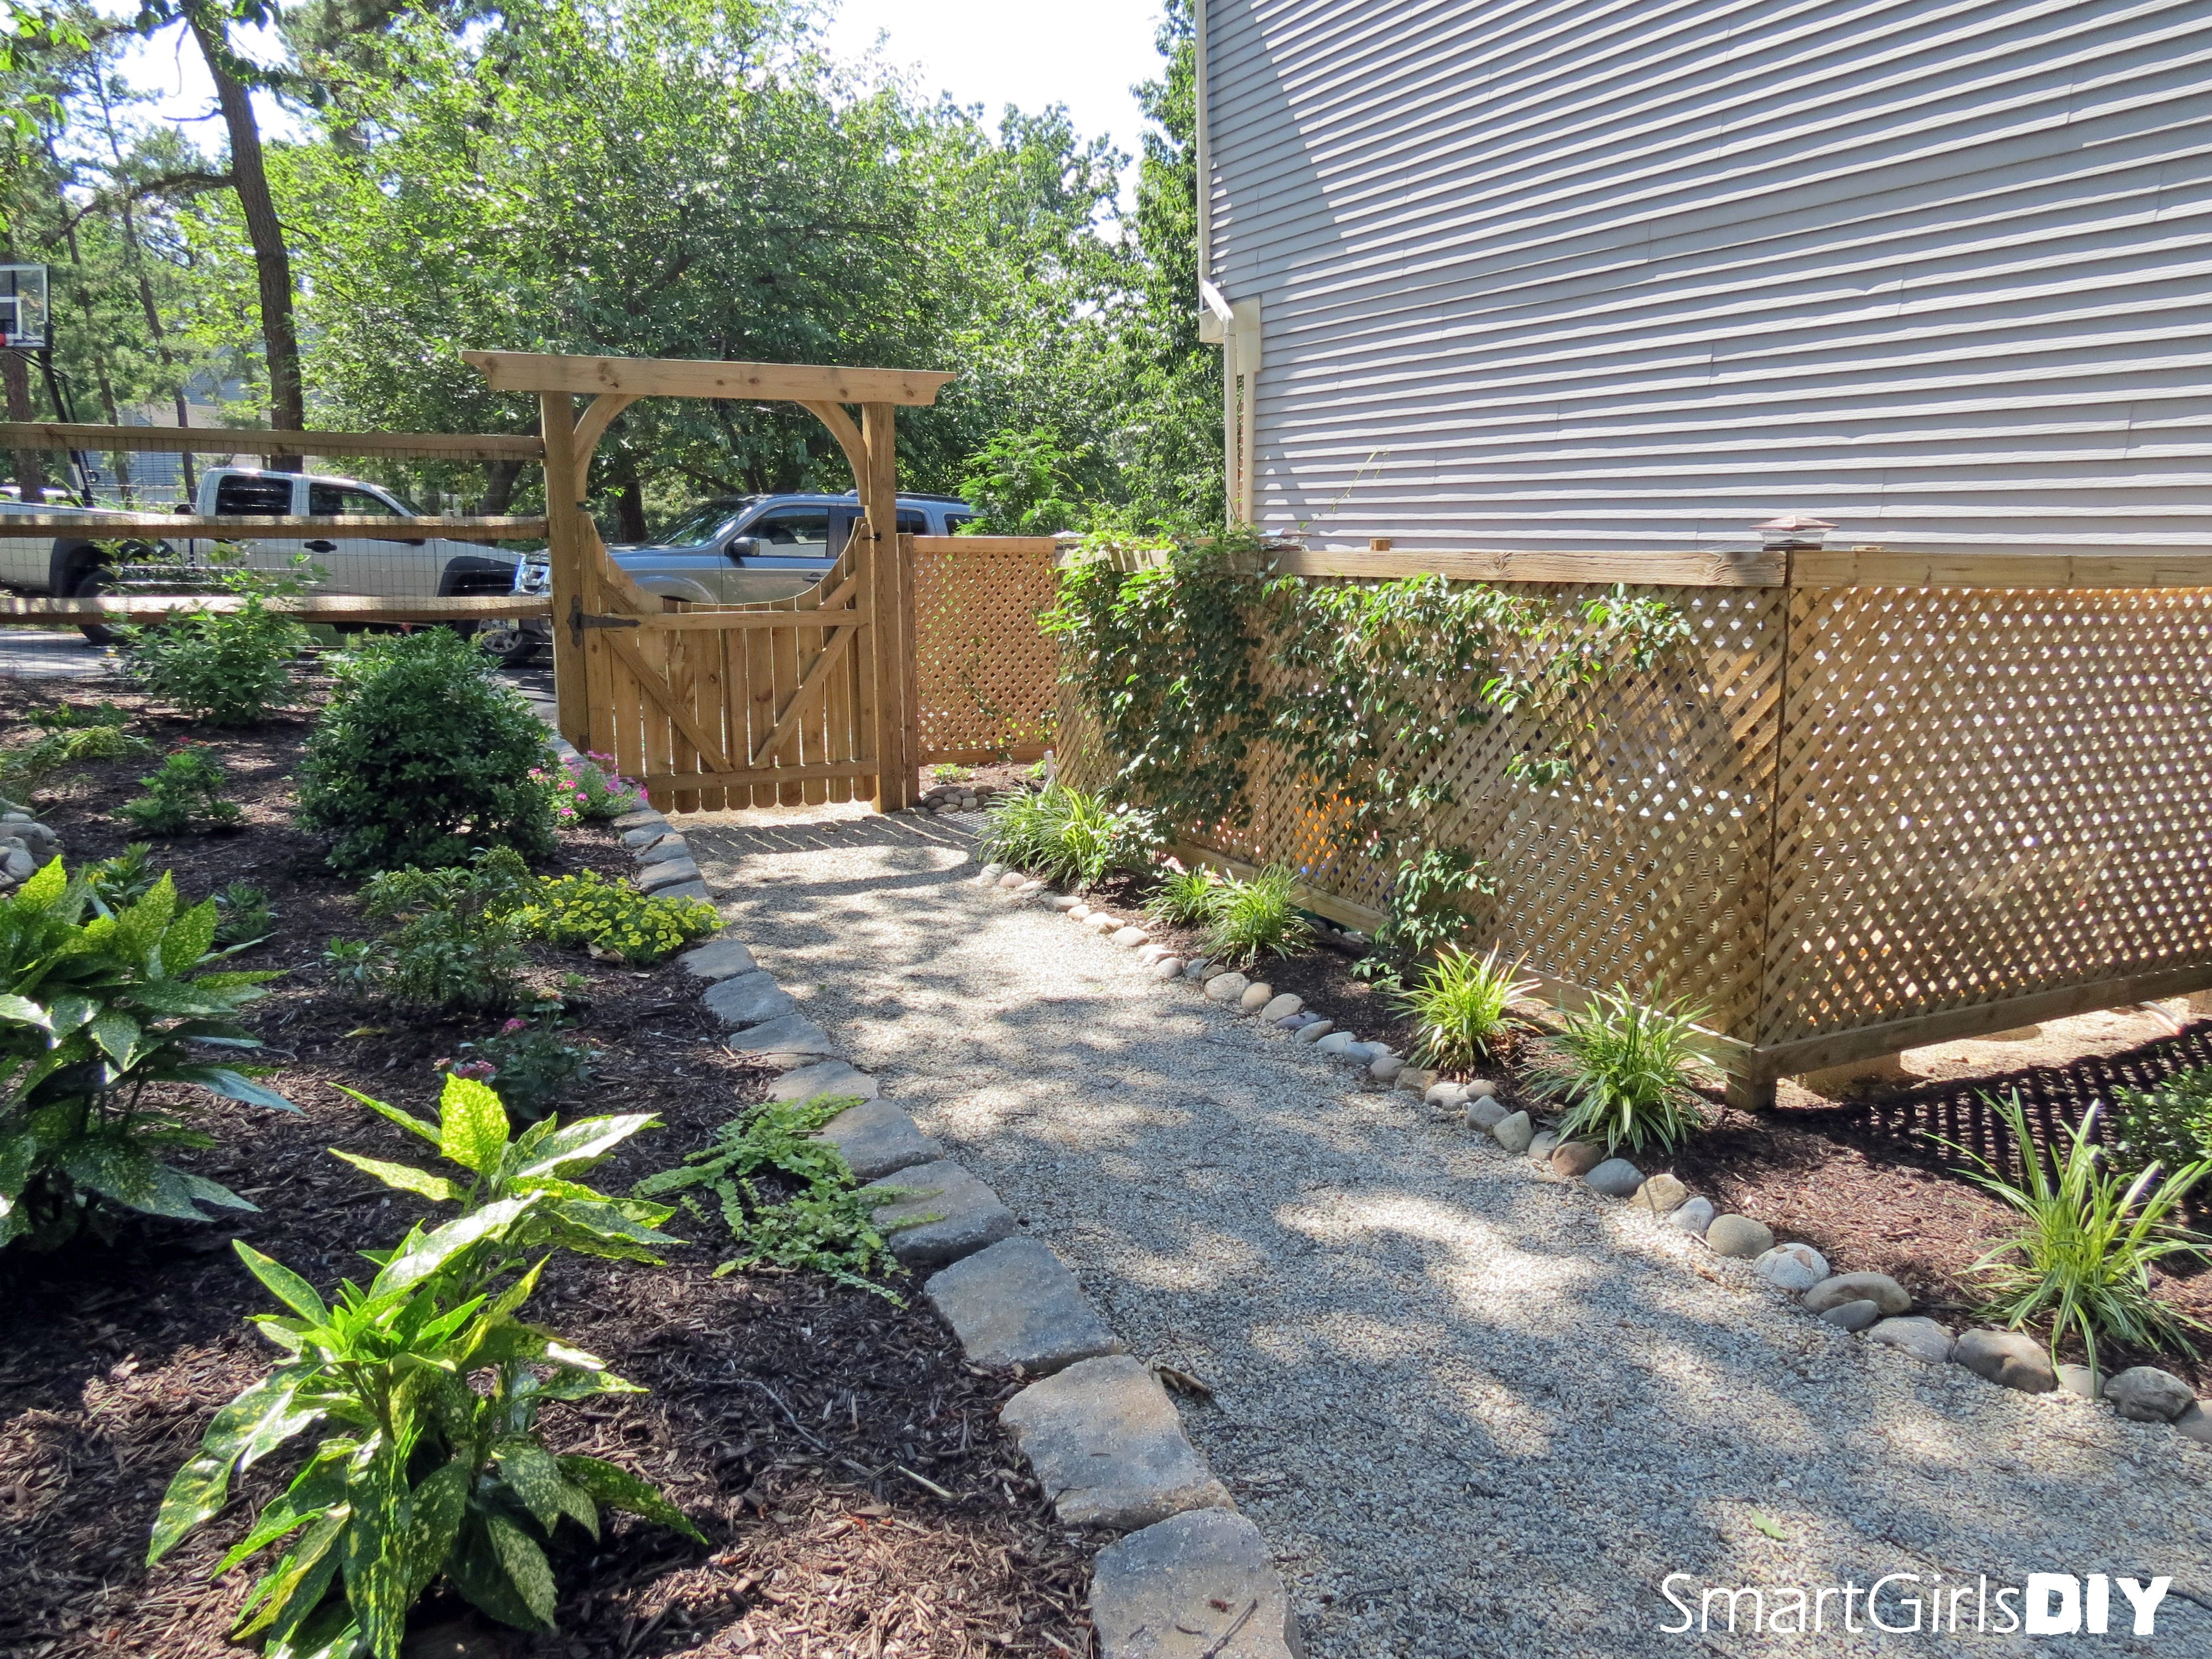 Crash your own yard hide garbage cans air conditioning unit behind attractive lattice - Garden ideas to hide fence ...